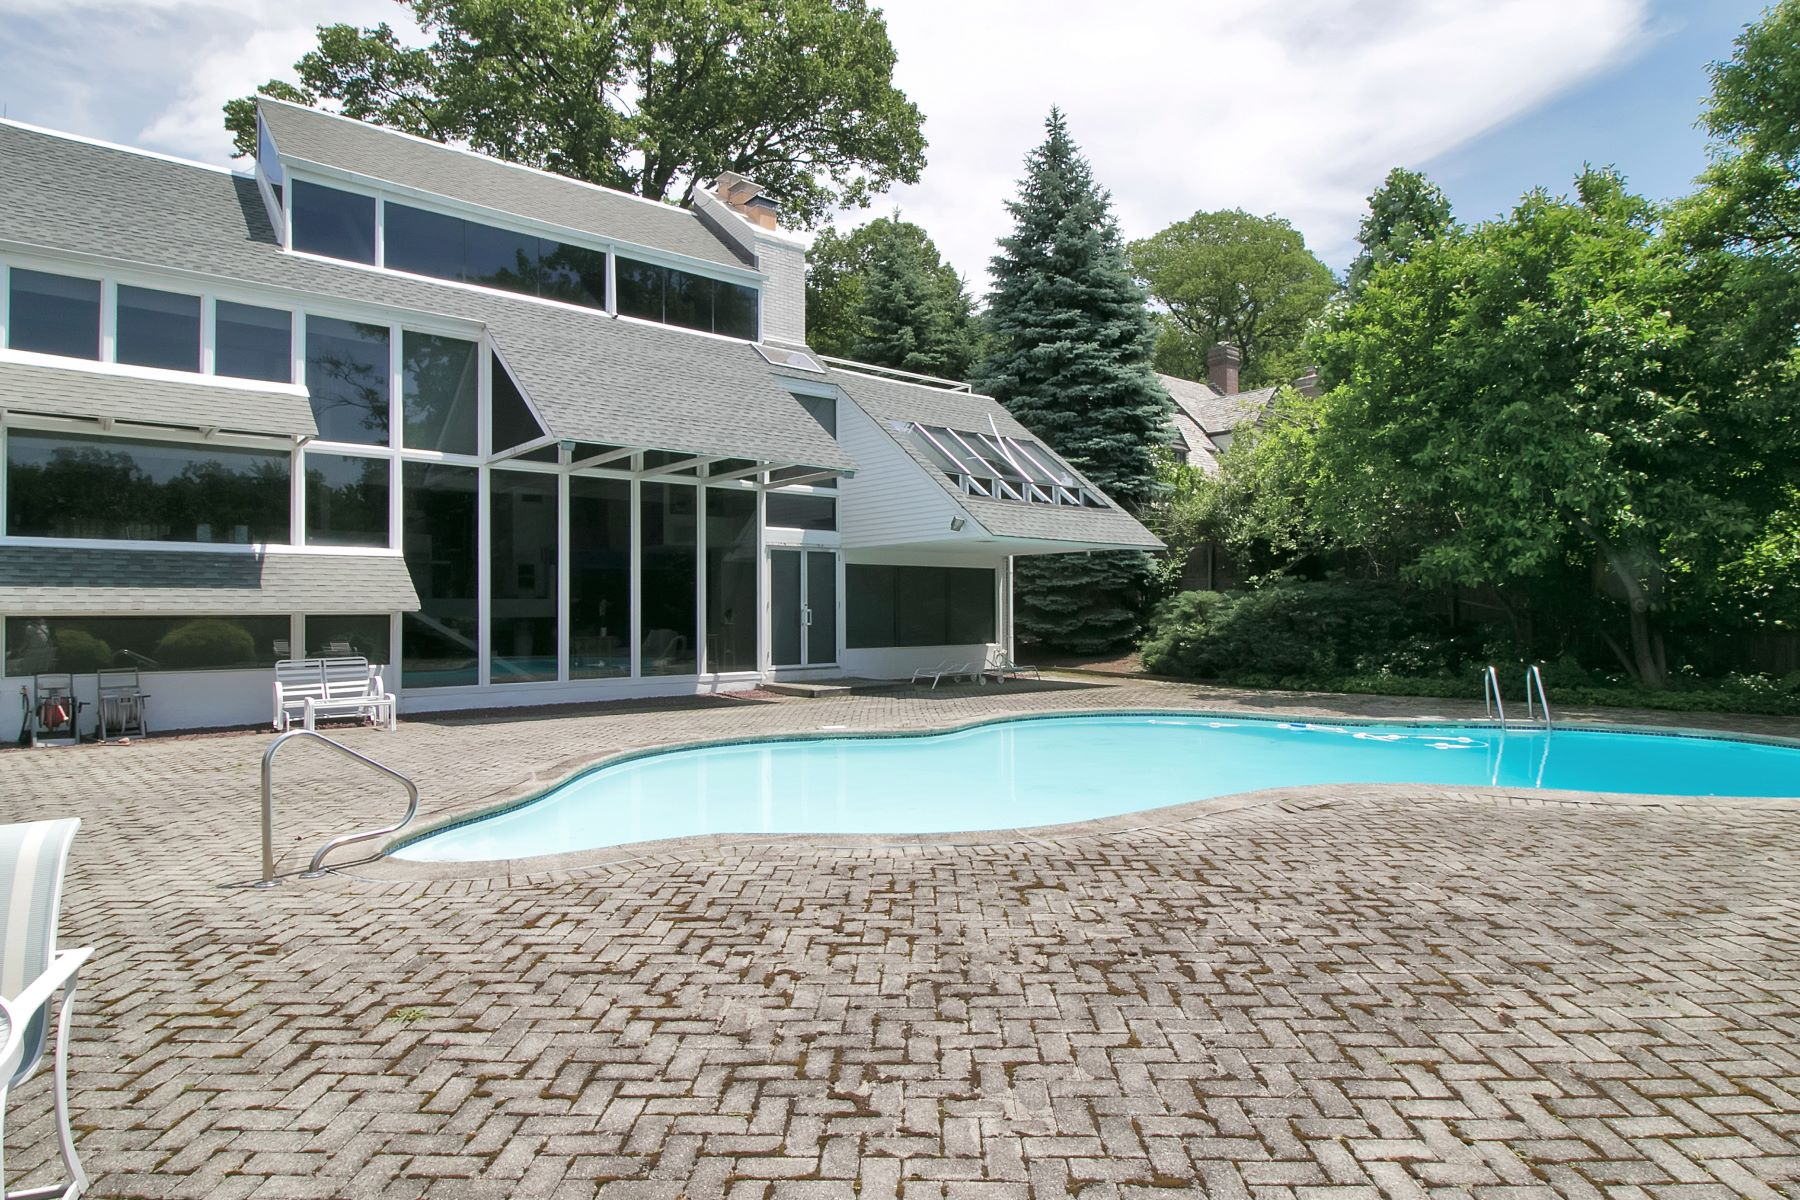 Single Family Home for Sale at Stunning Englewood Contemporary! 550 Illingworth Avenue, Englewood, New Jersey 07631 United States